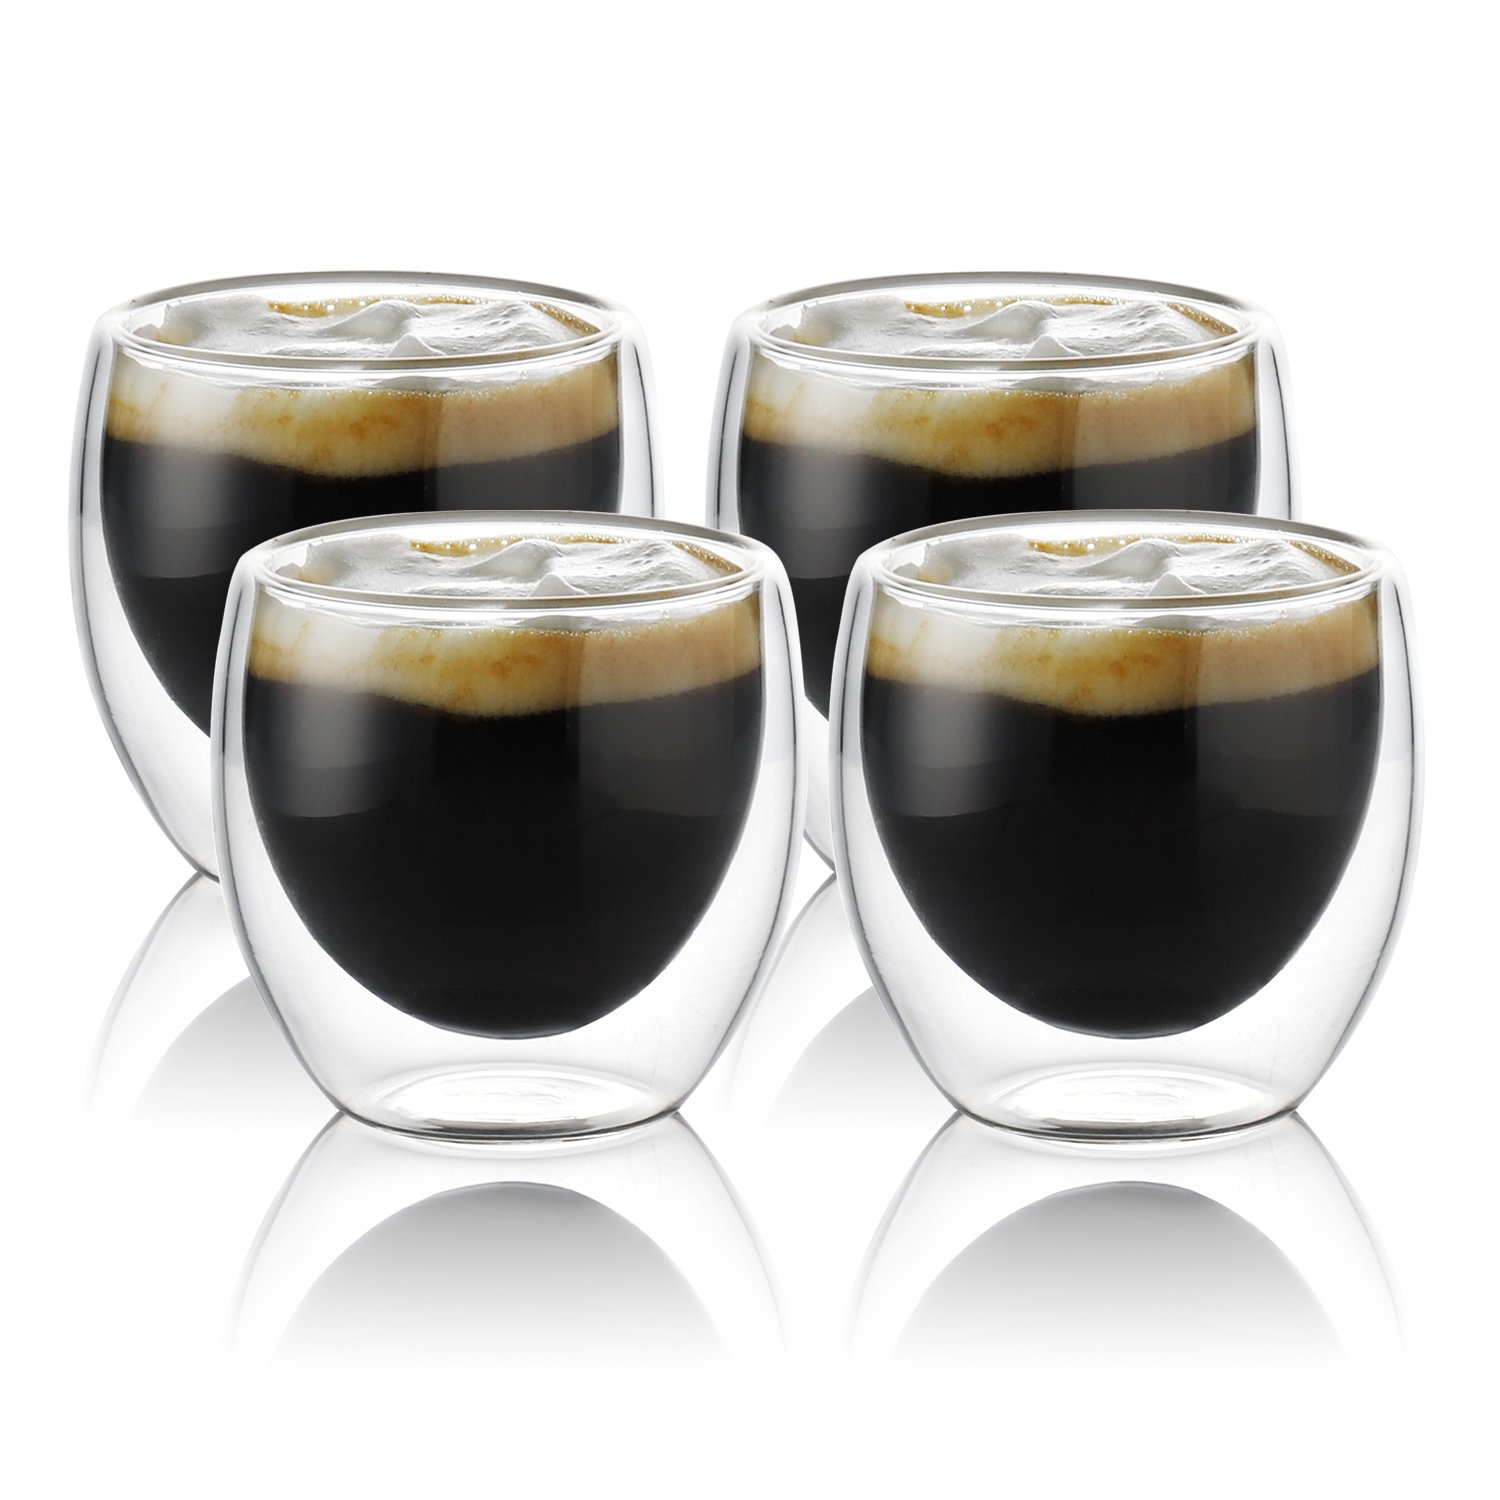 Teocera Espresso Cups Glasses - 3.5 oz Borosilicate Glass Coffee Mug, Clear And Durable Double Walled Mug Sets with Insulation, Good for Espresso Coffee, Tea, Beverage, Set of 4